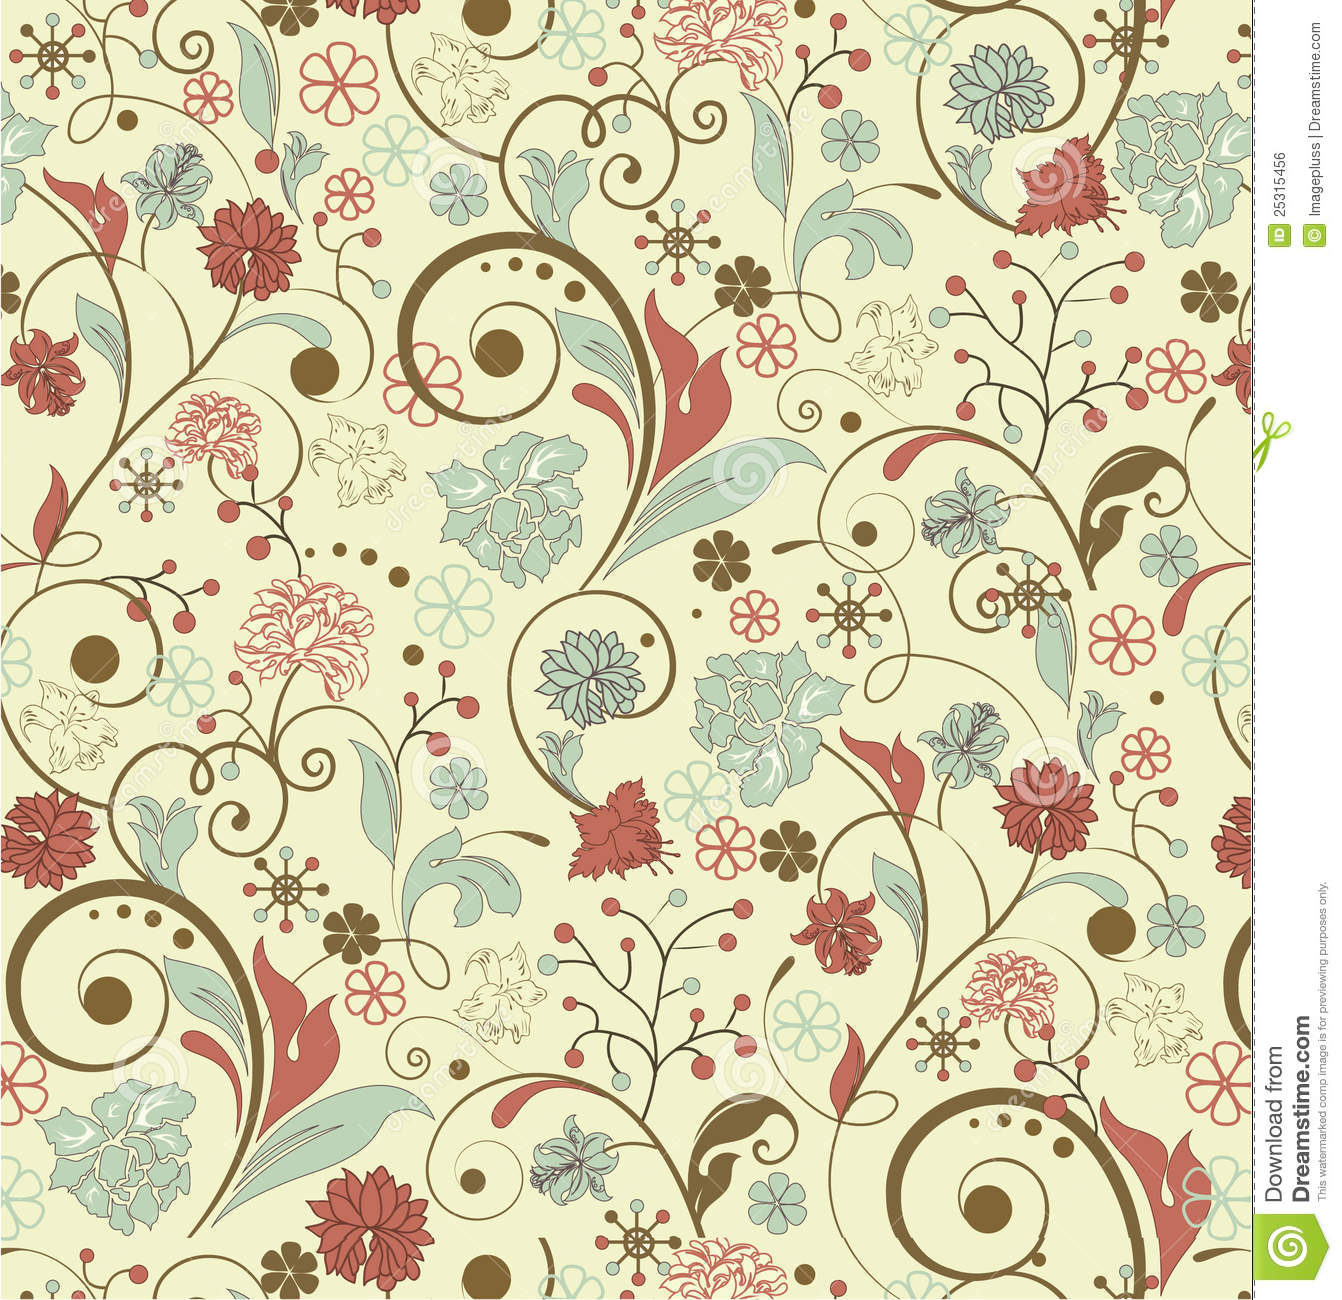 Vintage Floral Background Stock Vector Illustration Of Natural